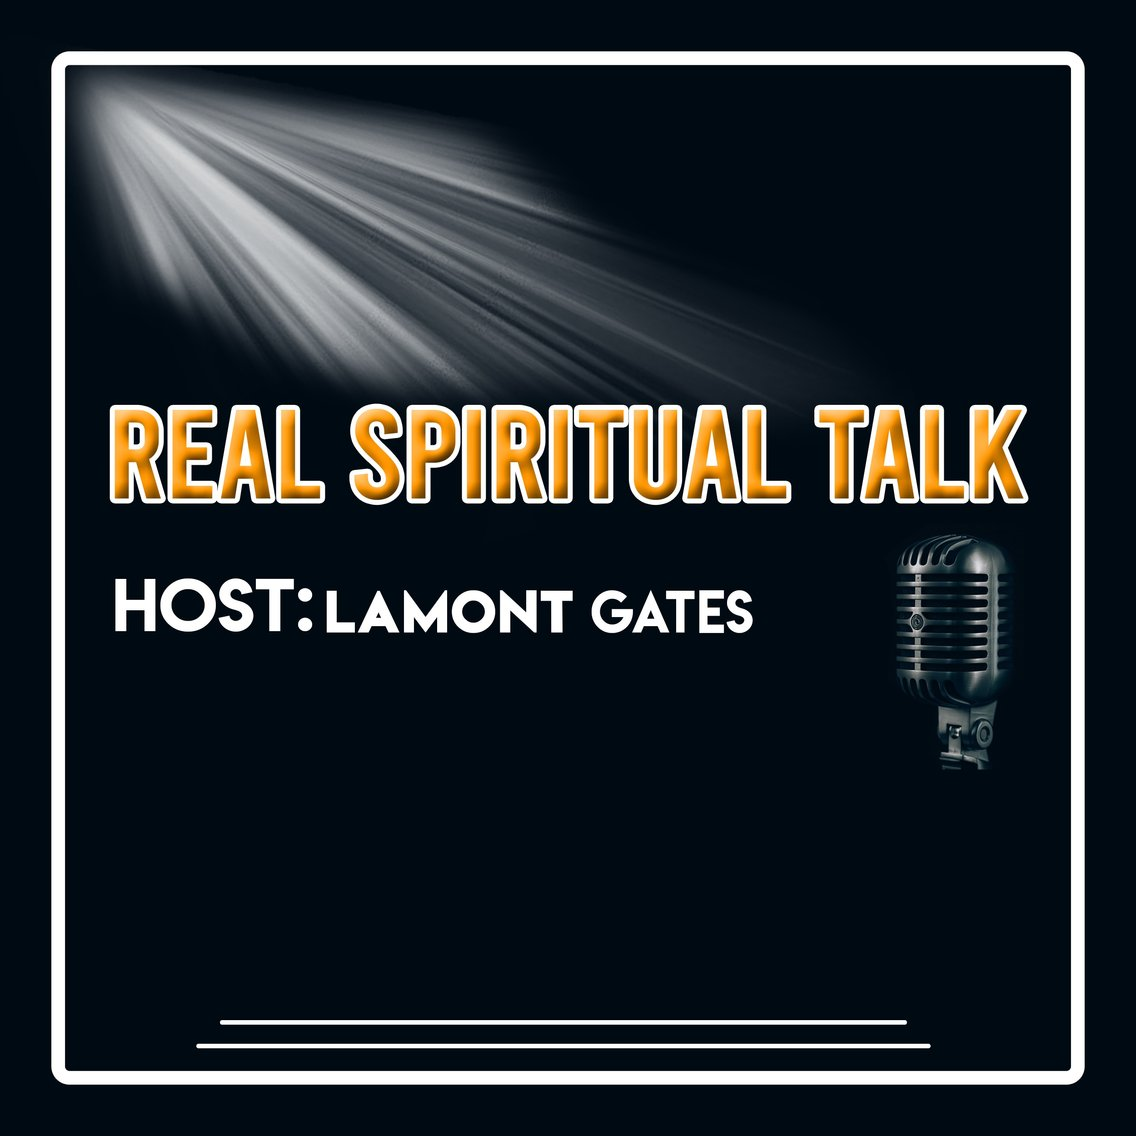 Real Spiritual Talk Radio - Cover Image